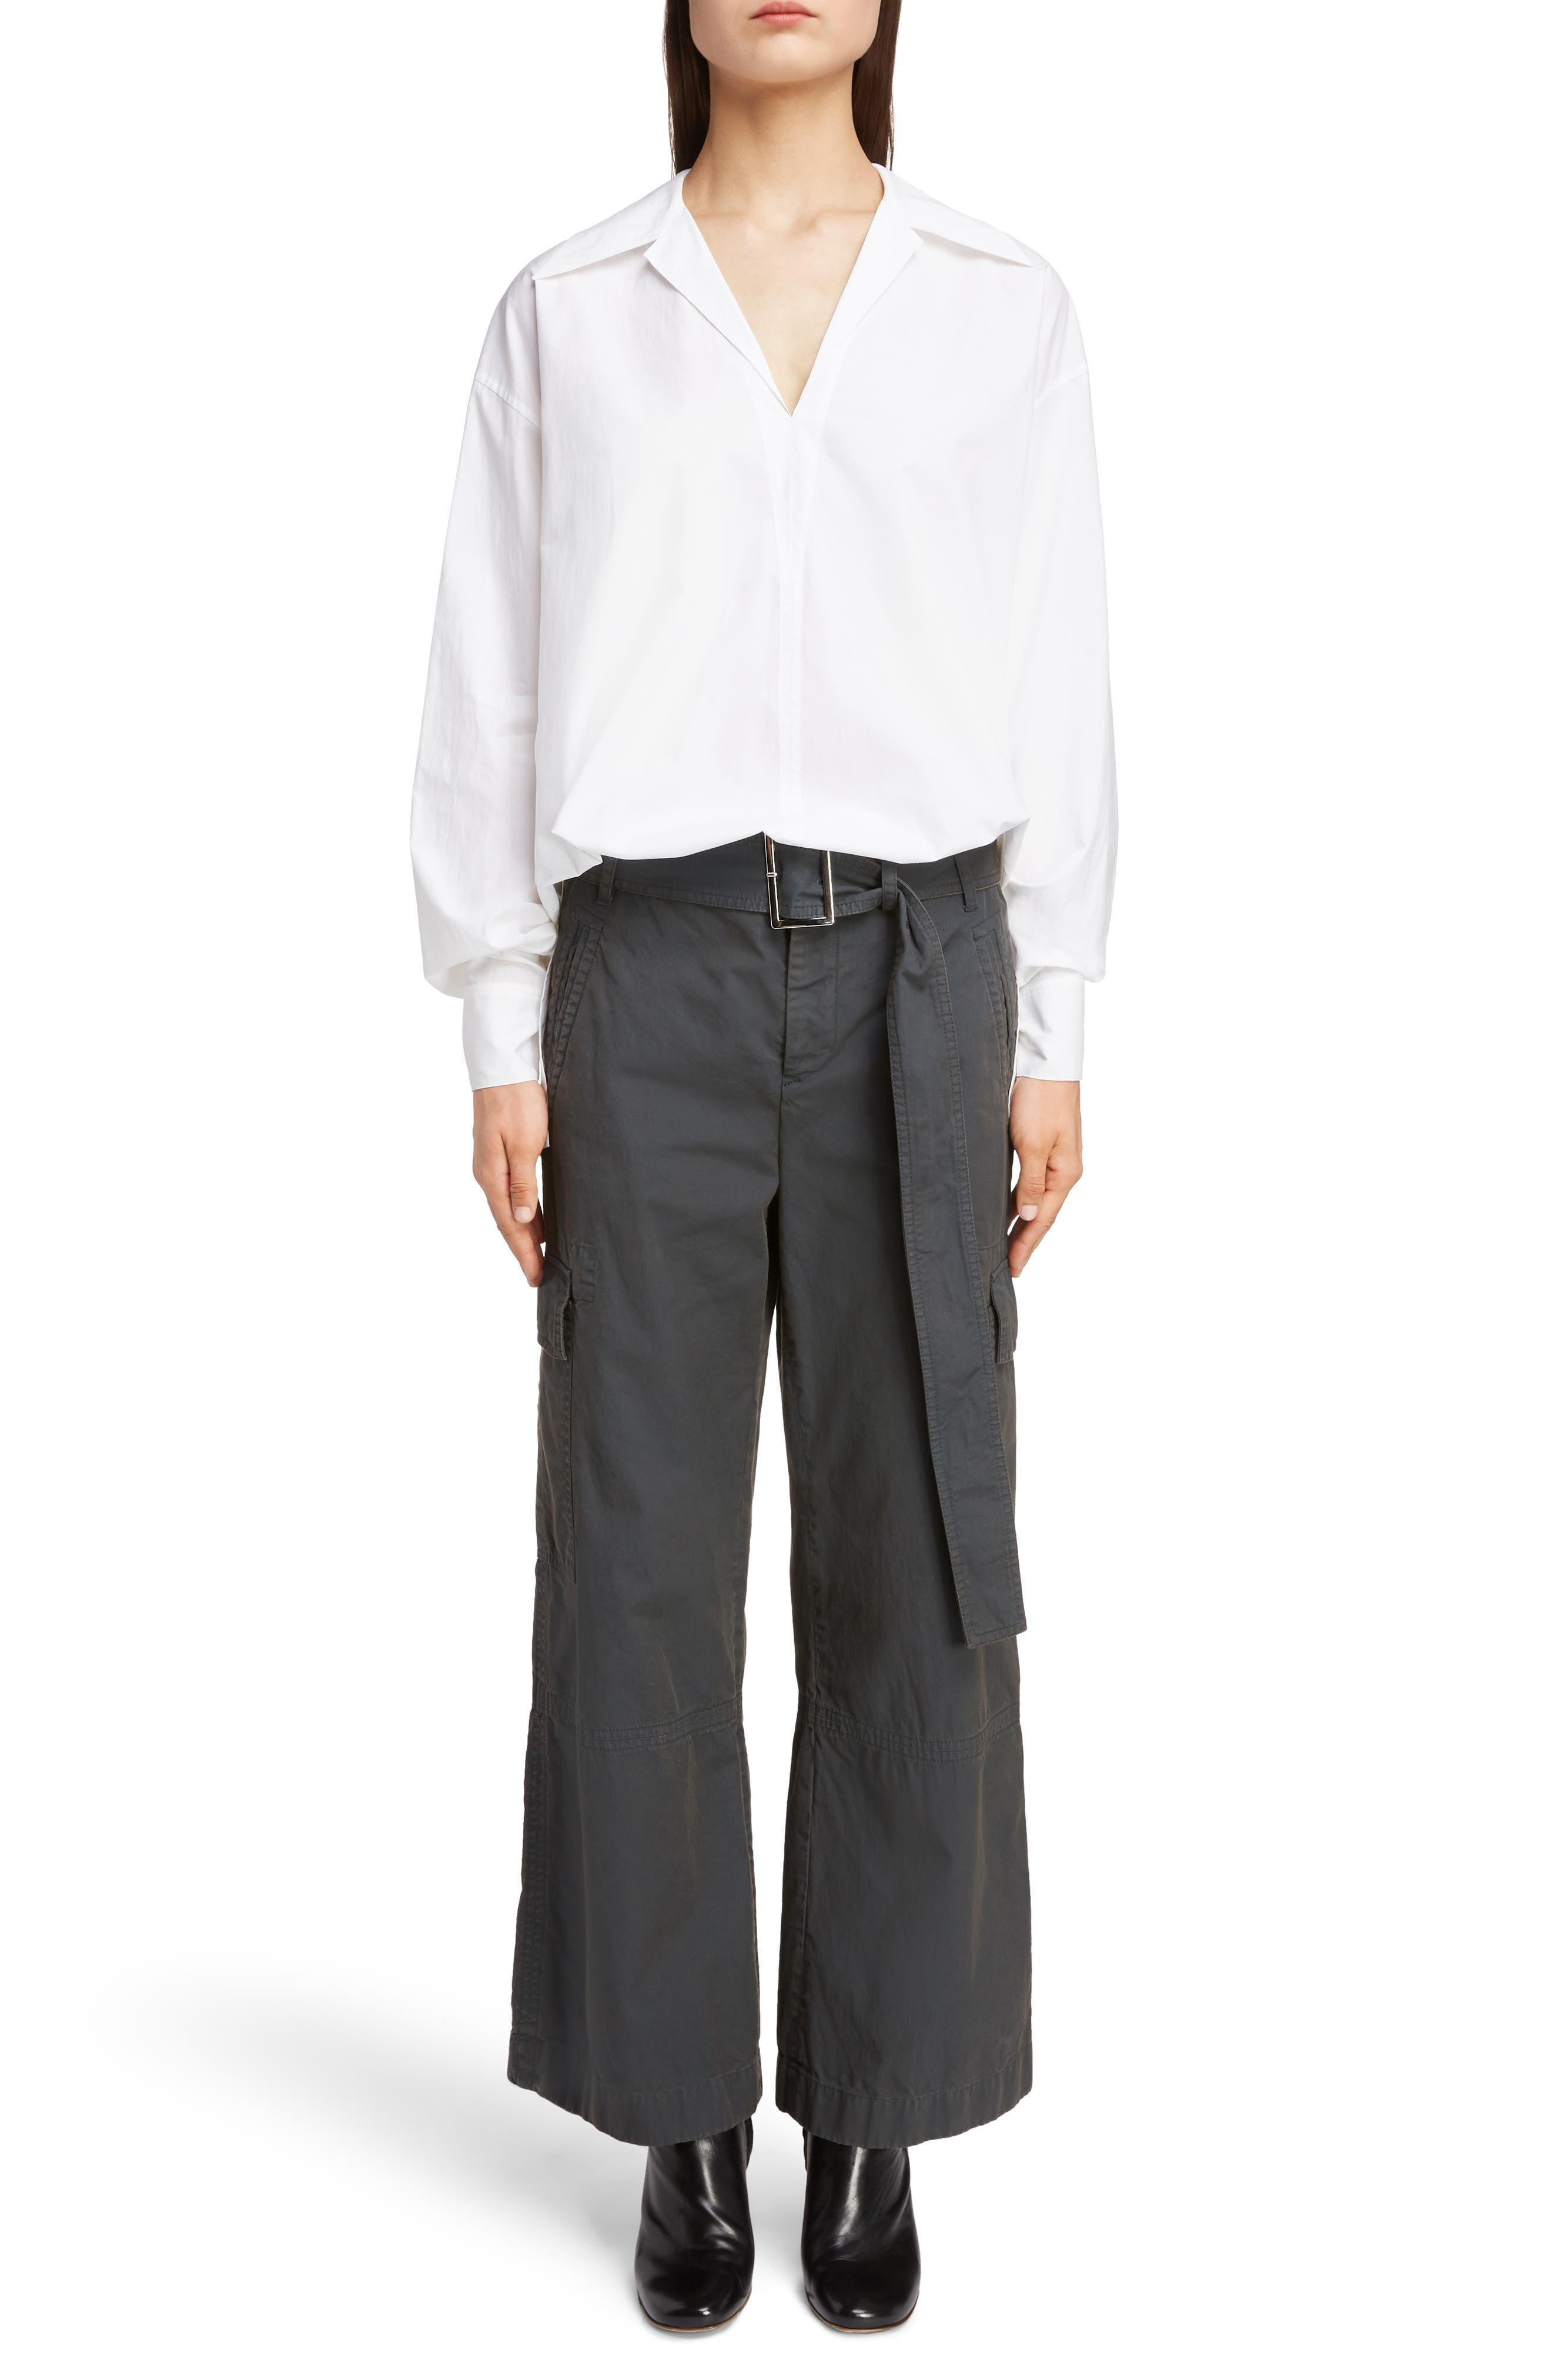 ACNE STUDIOS,                             Patrice Cotton Chino Trousers,                             Alternate thumbnail 6, color,                             ANTHRACITE GREY